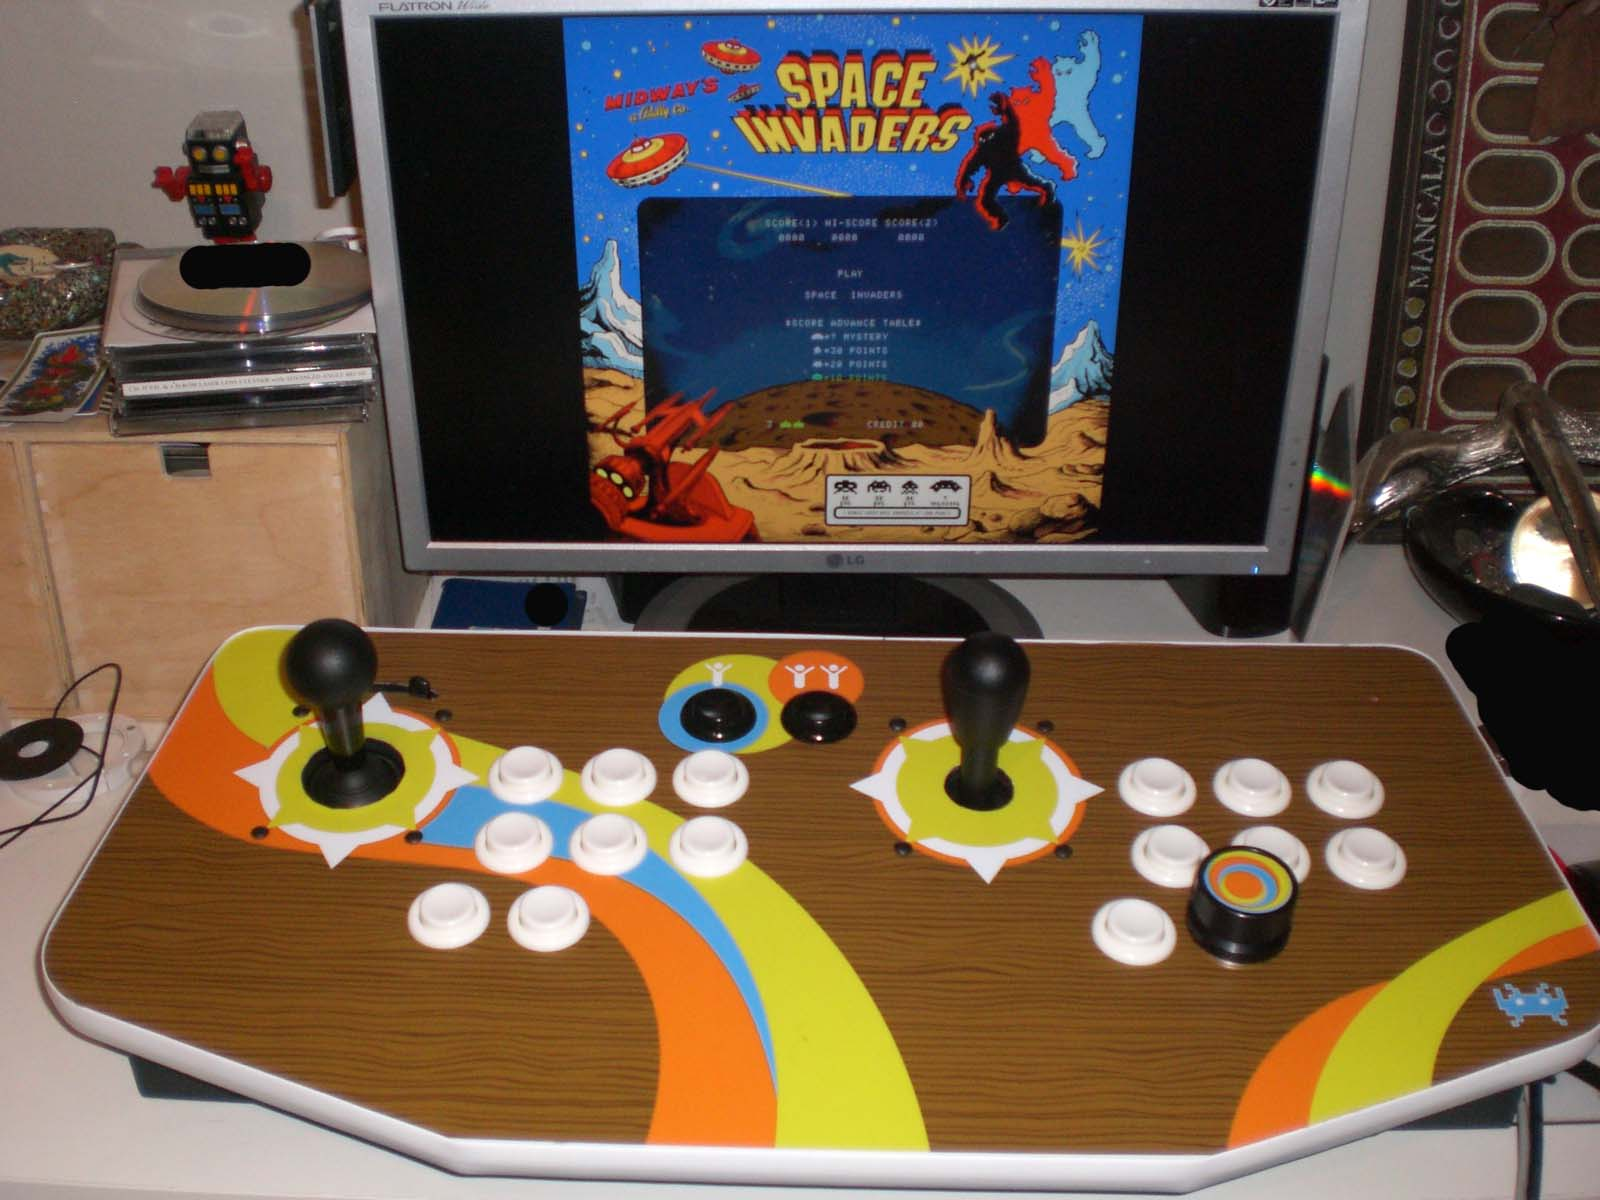 MAME: how to do with games that need special controls? - Emulation